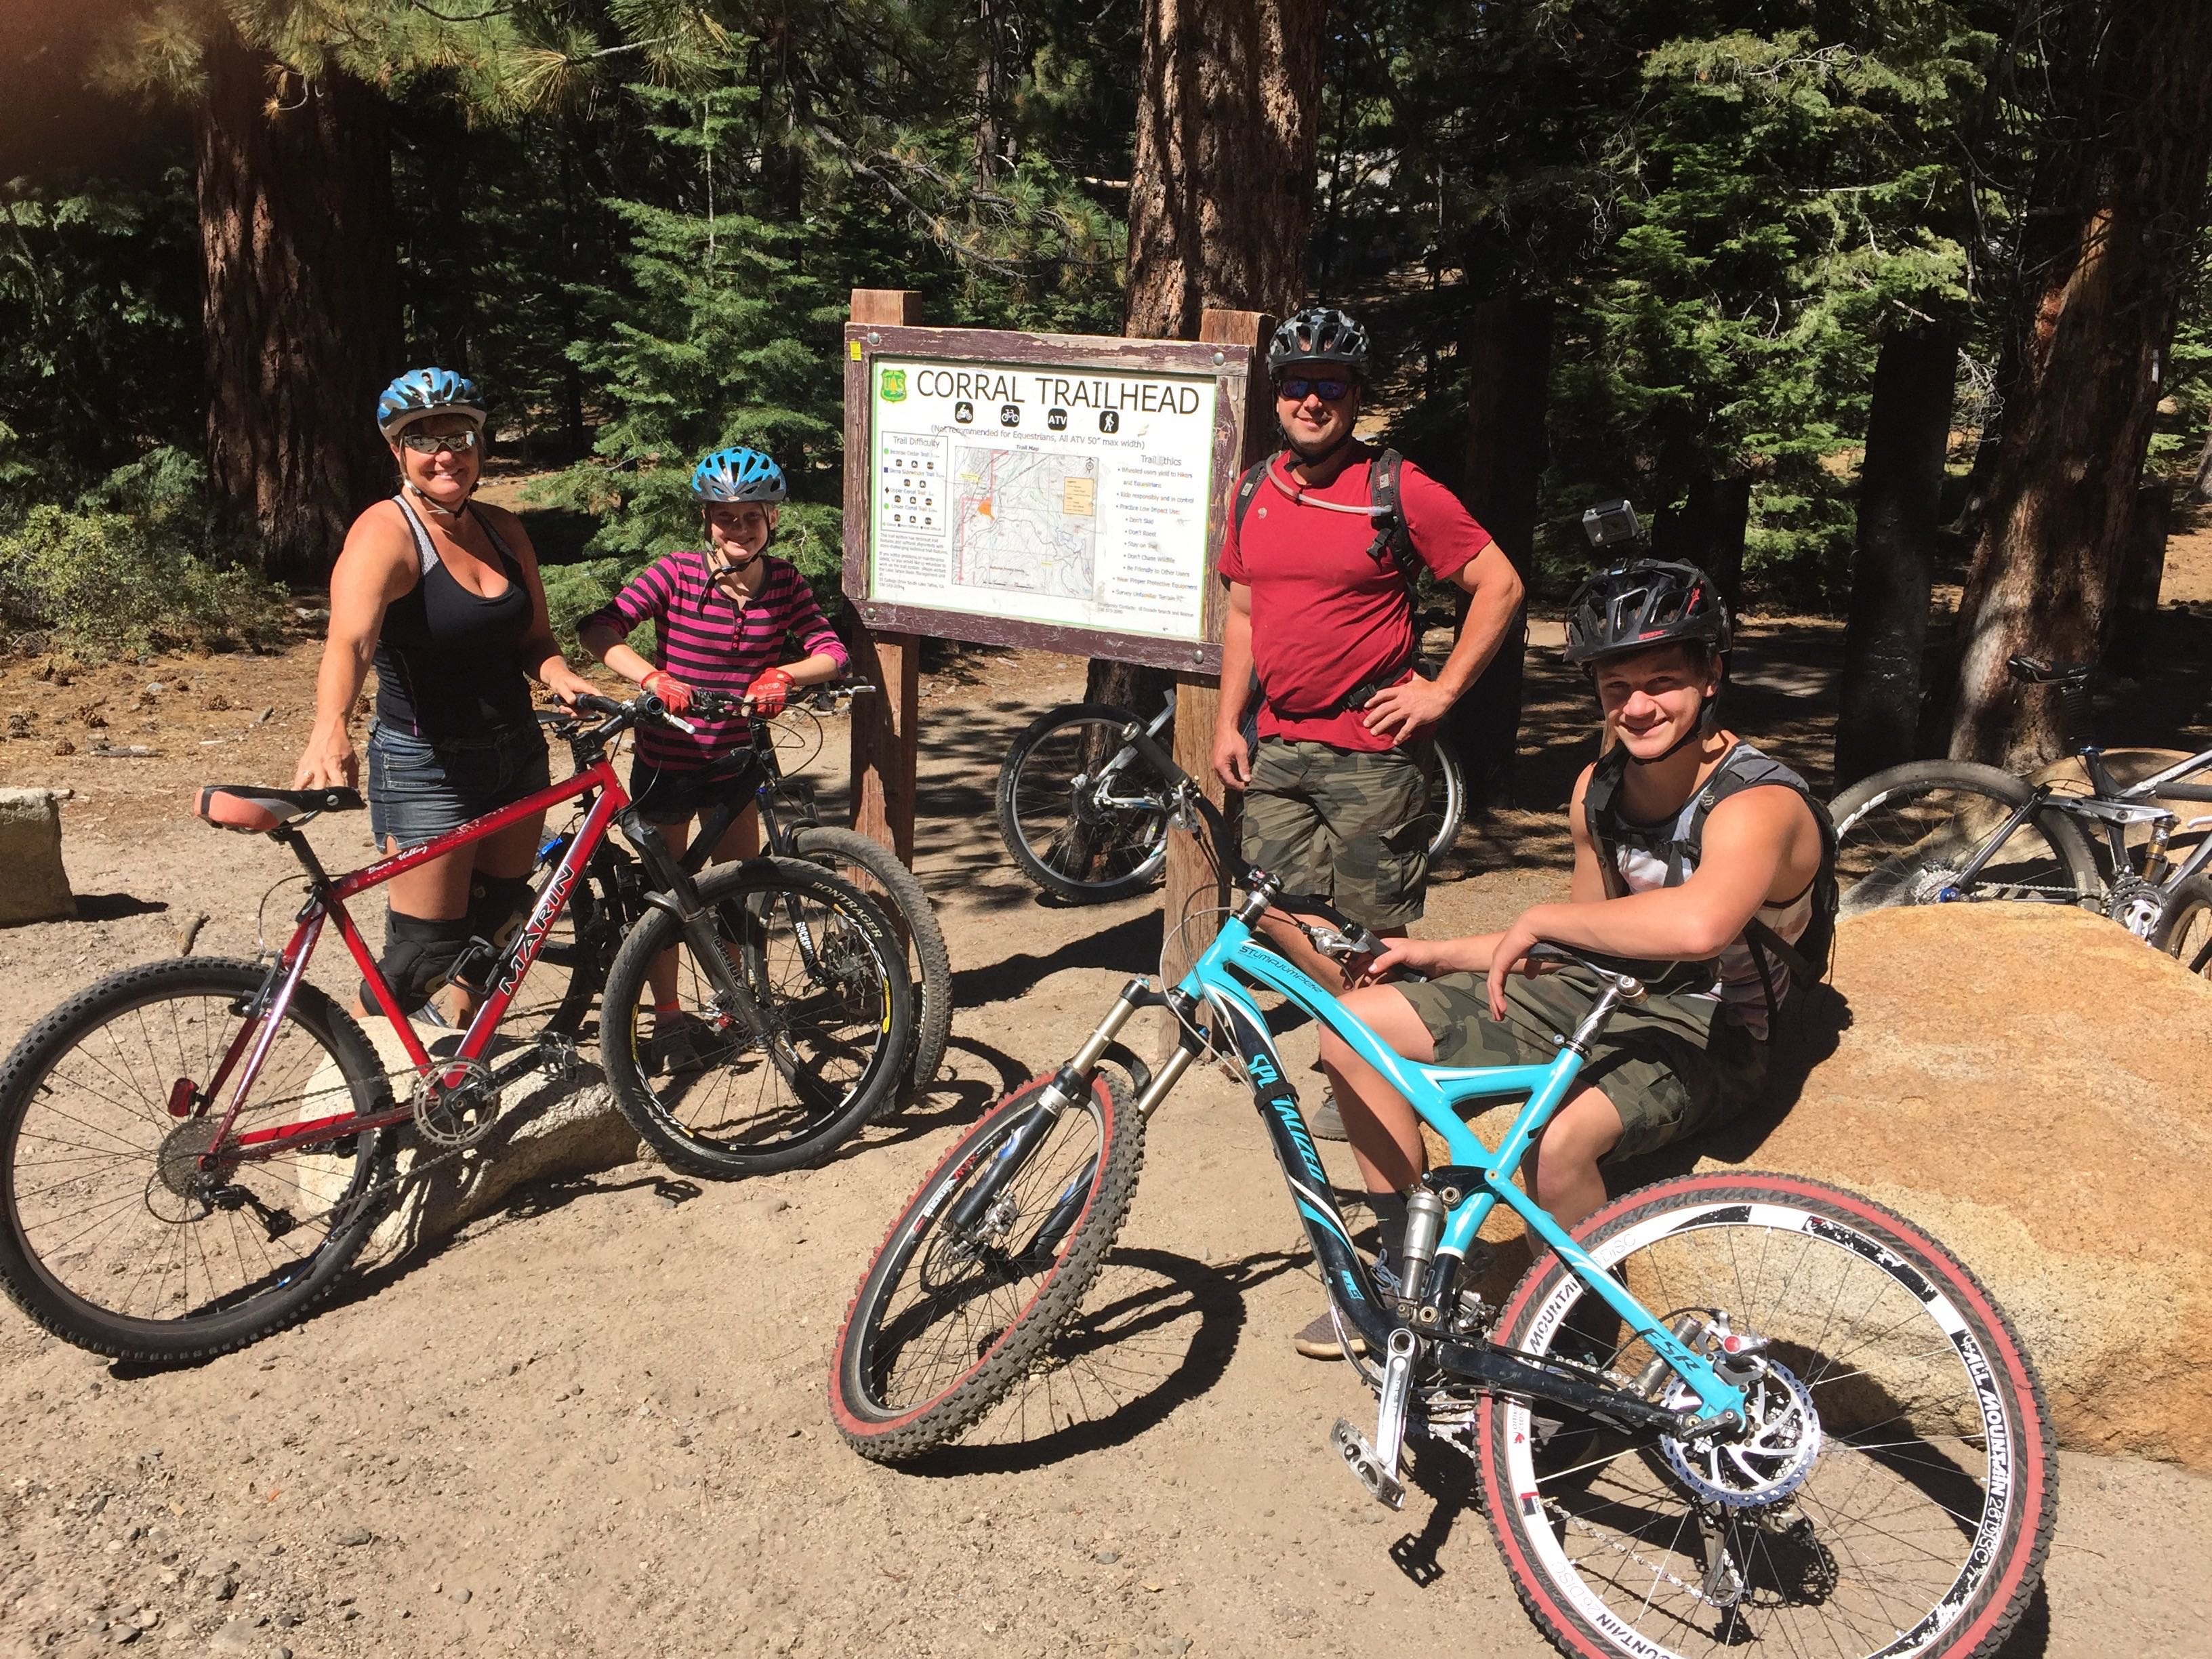 Family Mt Biking - 2016